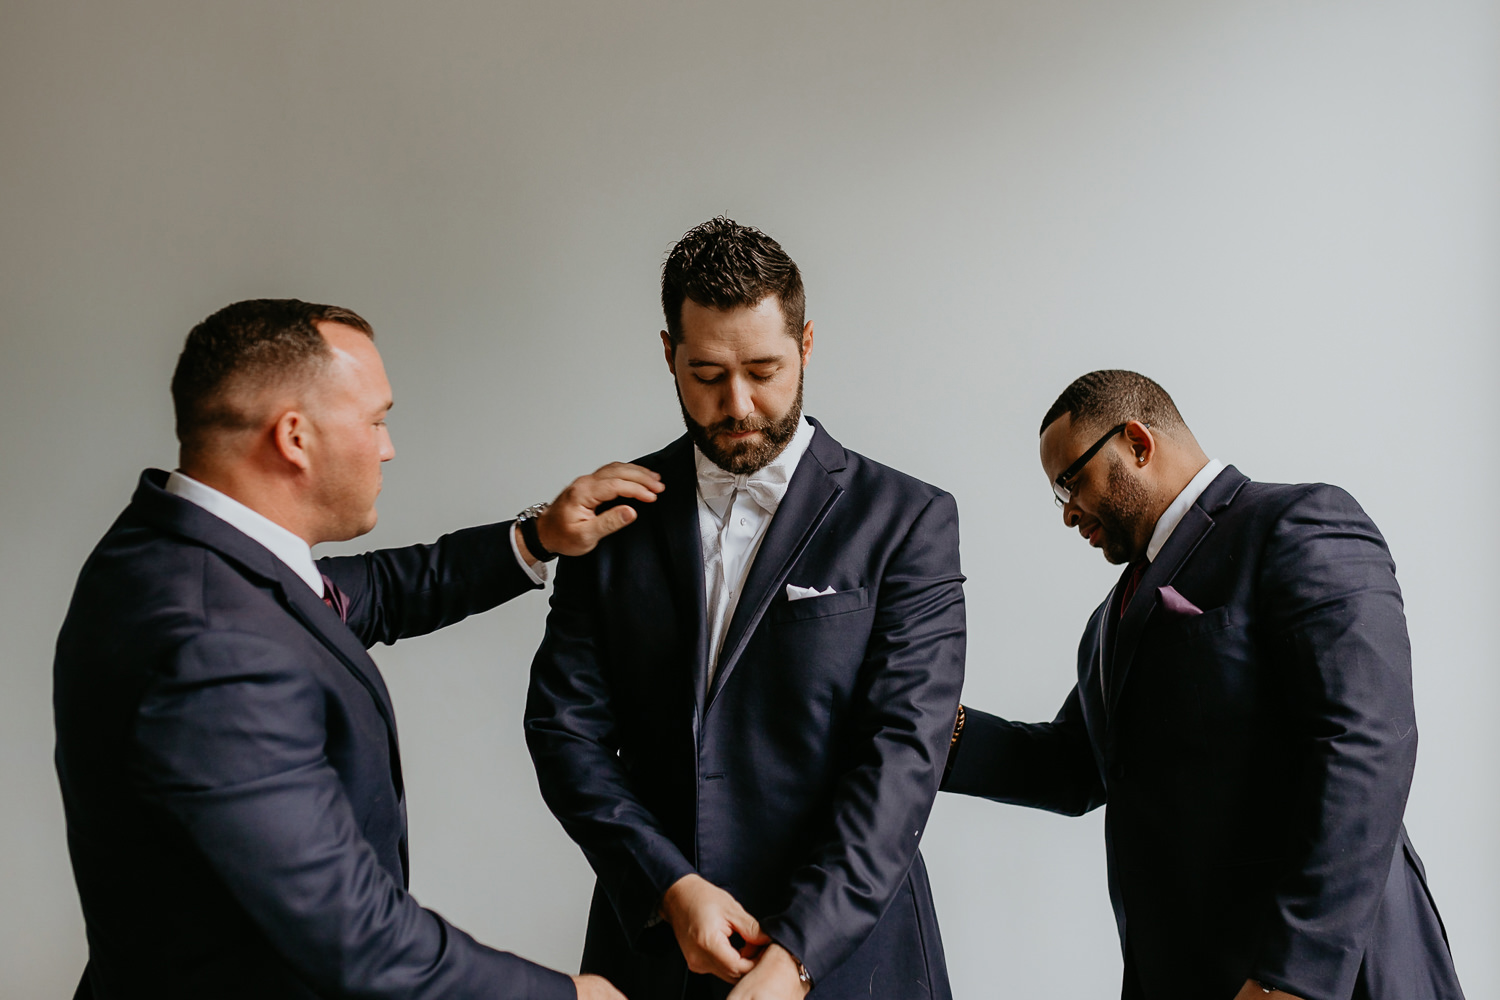 two groomsmen dusting off the groom's suit making sure he looks fly